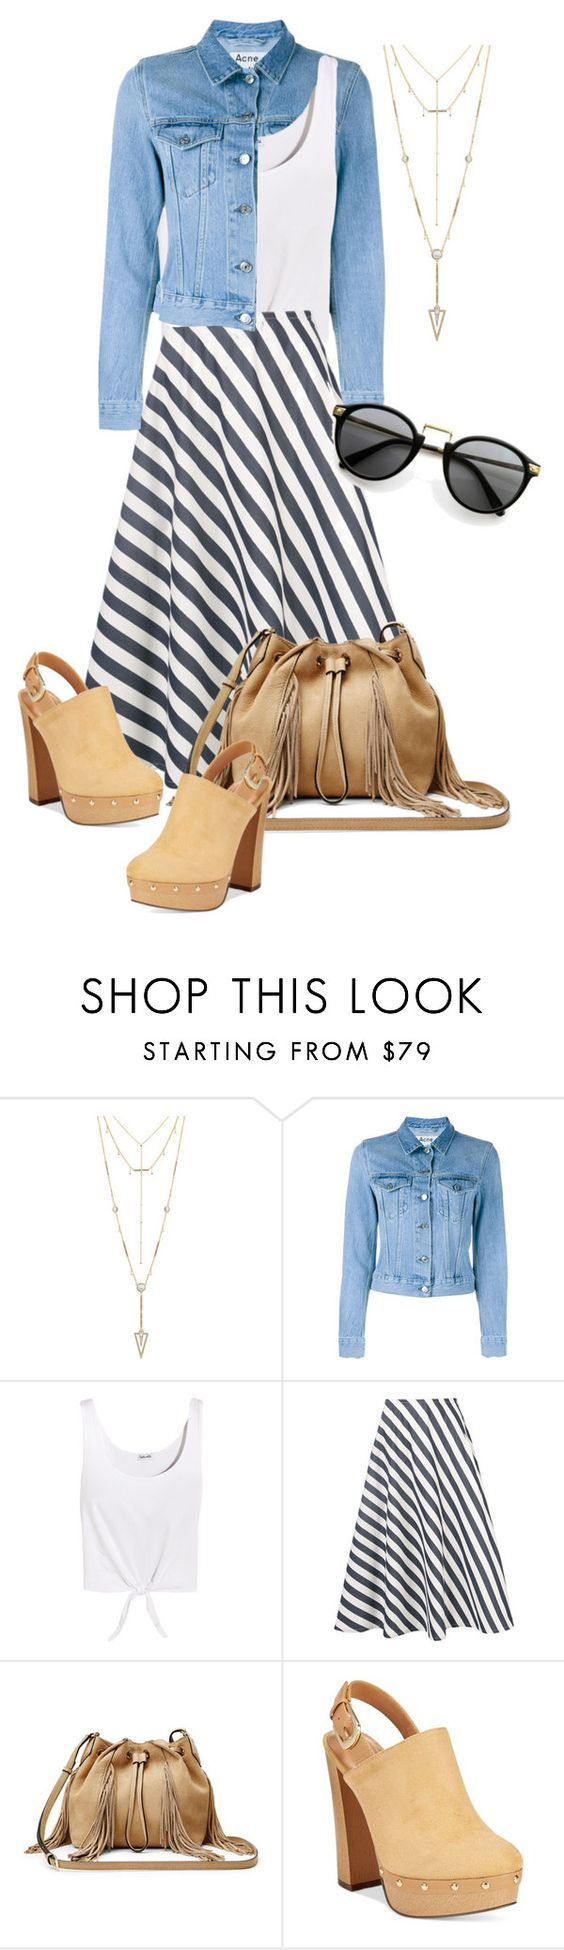 """""""Untitled #631"""" by indirareeves on Polyvore featuring House of Harlow 1960, Acne Studios, Splendid, Sofie D'hoore, Diane Von Furstenberg and Report"""